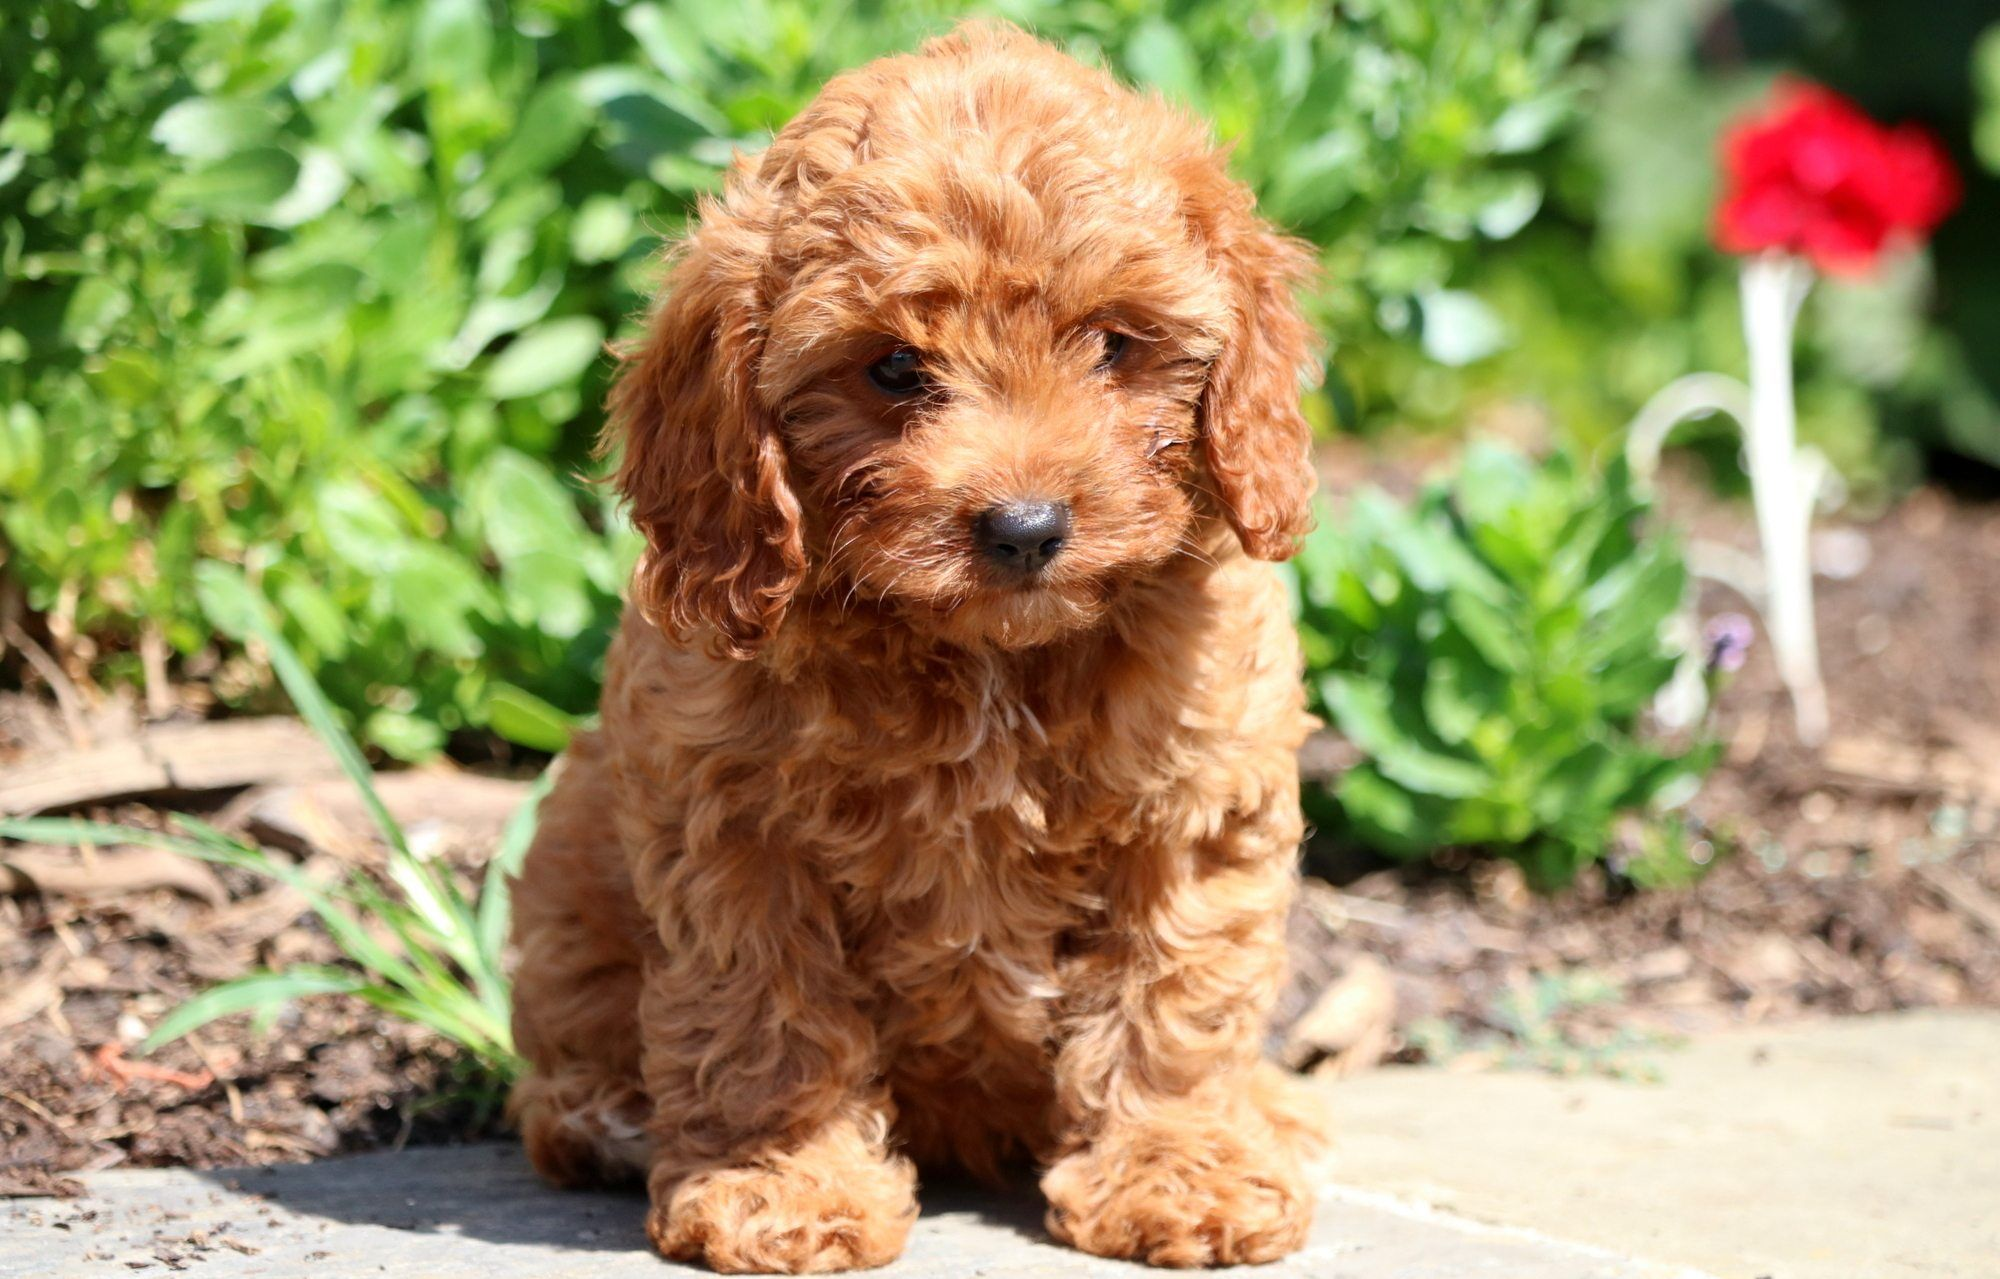 Cavapoo Puppies For Sale | Puppy Goals | Cavapoo puppies